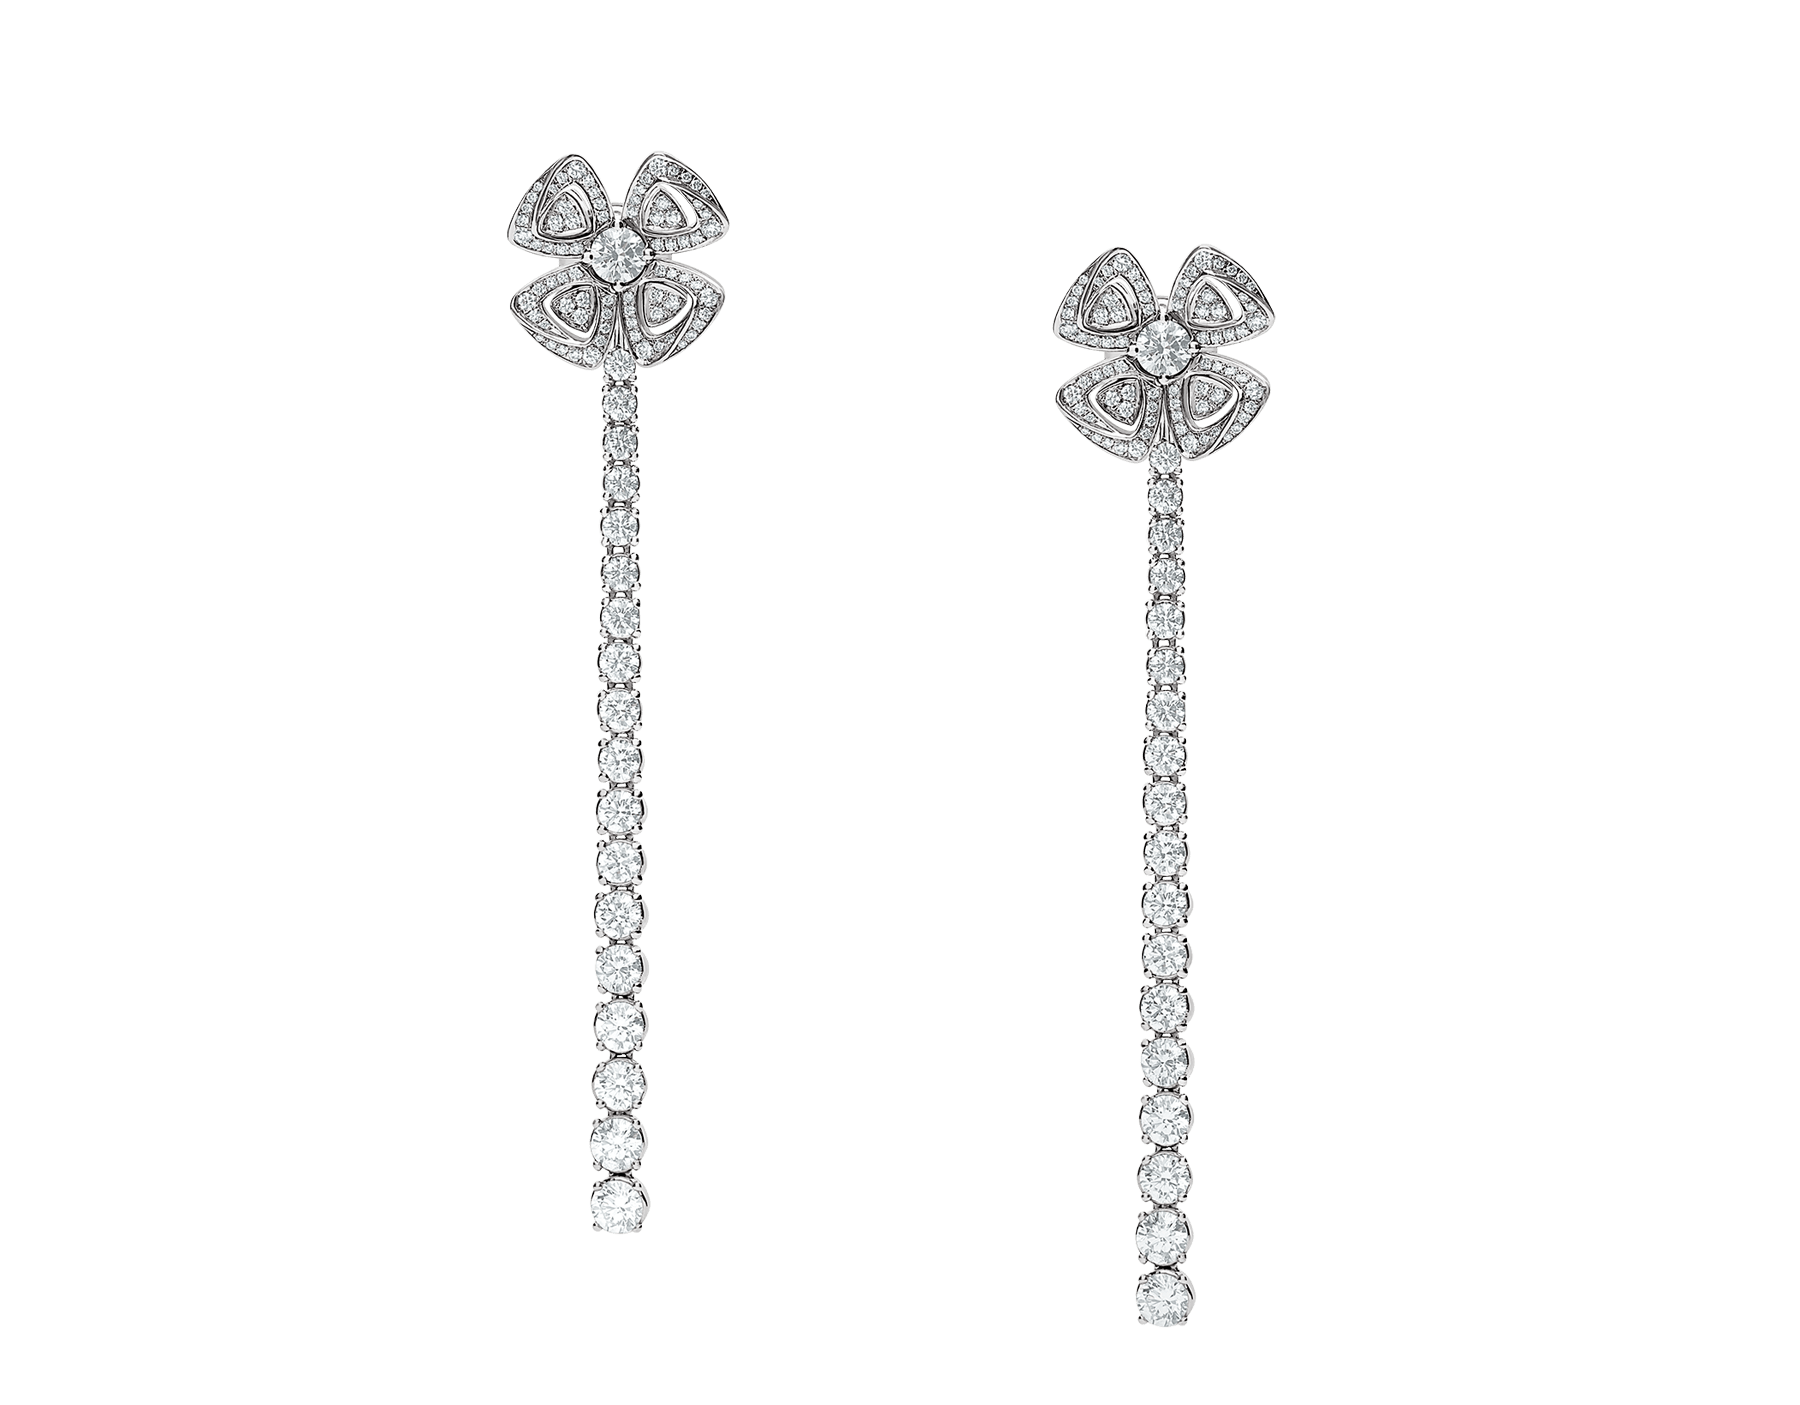 Fiorever 18 kt white gold convertible earrings set with brilliant-cut diamonds (2.81 ct) and pavé diamonds (0.26 ct) 358158 image 2